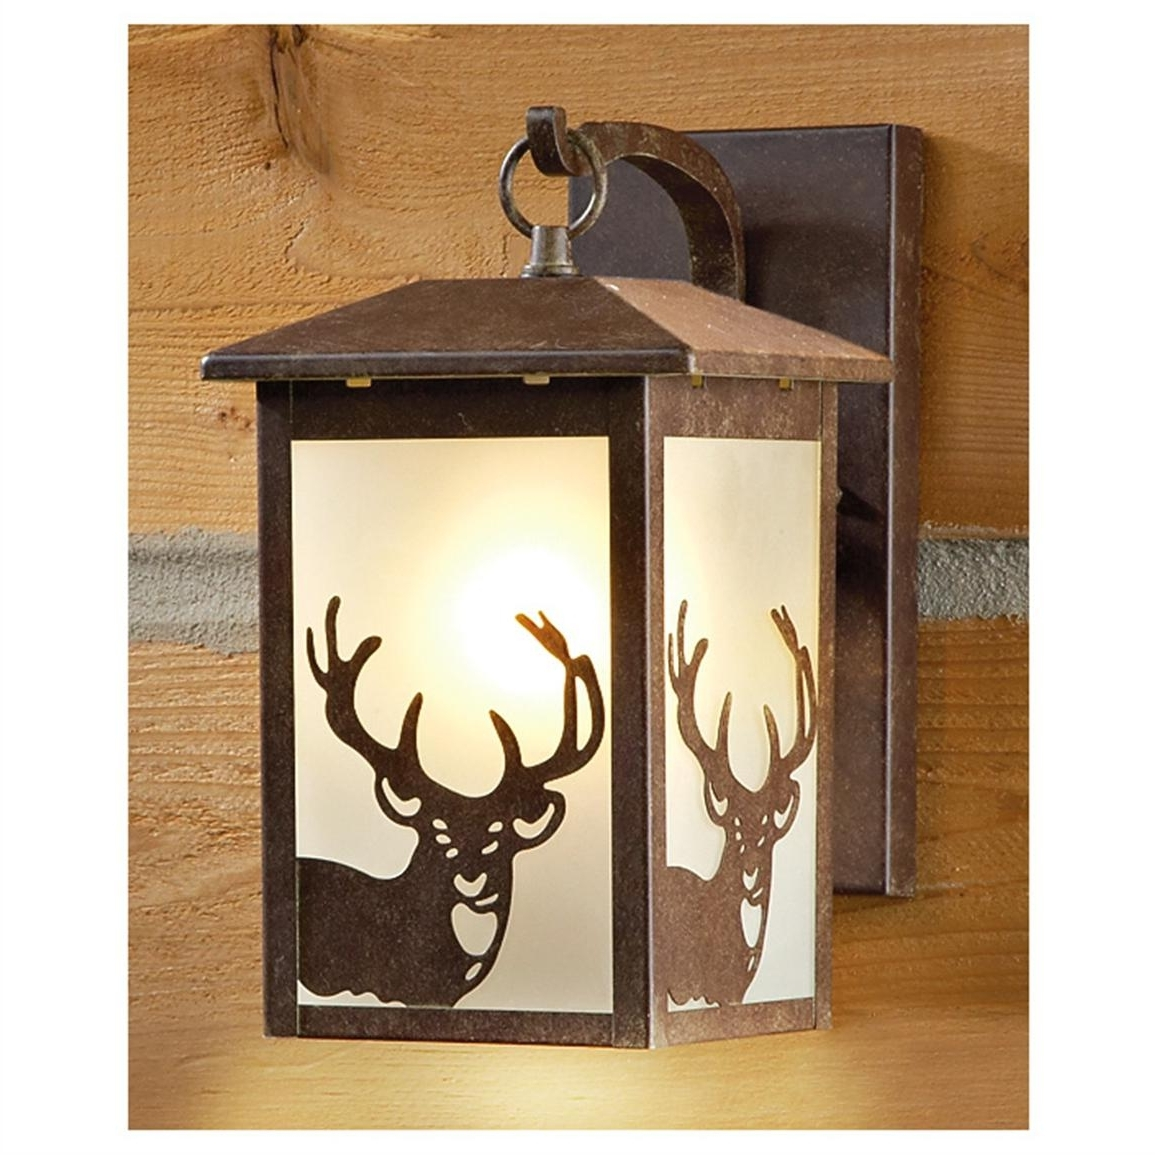 Most Recent Outdoor Lanterns For Tables For Rustic Outdoor Hanging Lamps Table Landscape Lighting Wall Mounted (View 7 of 20)